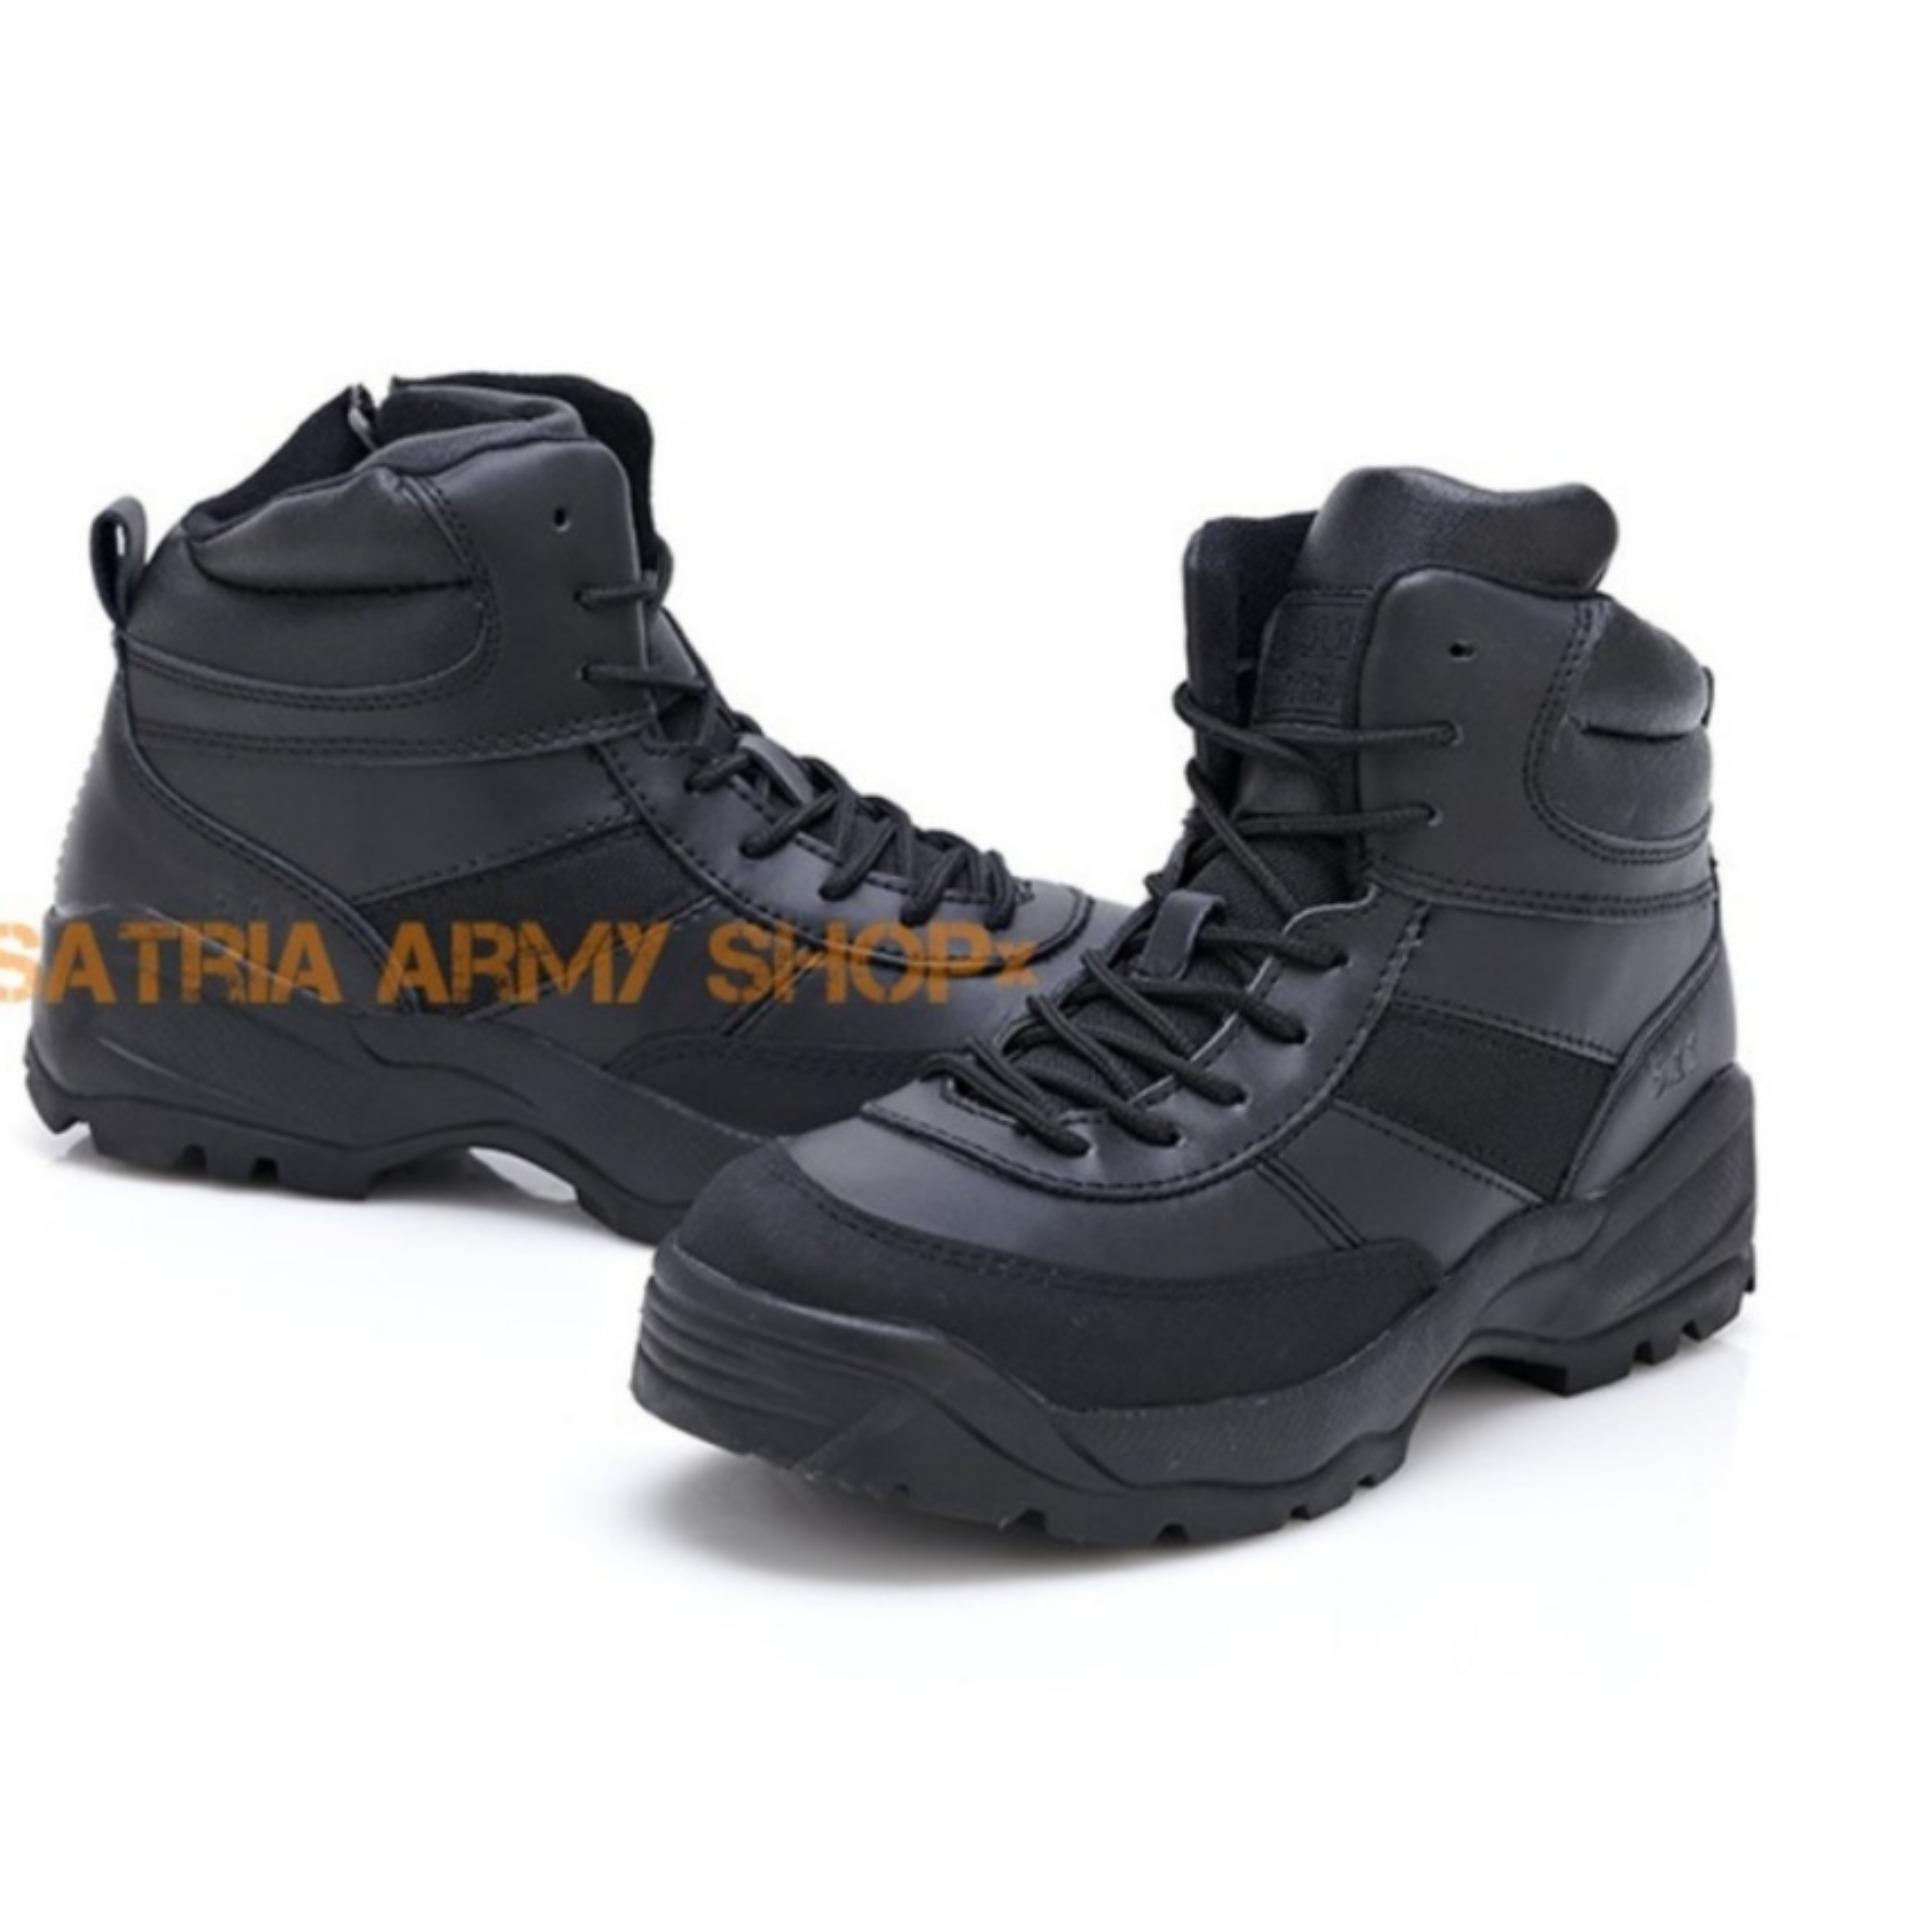 Sepatu 511 Tactical - 6 inch Hitam Quality Original Outdoor